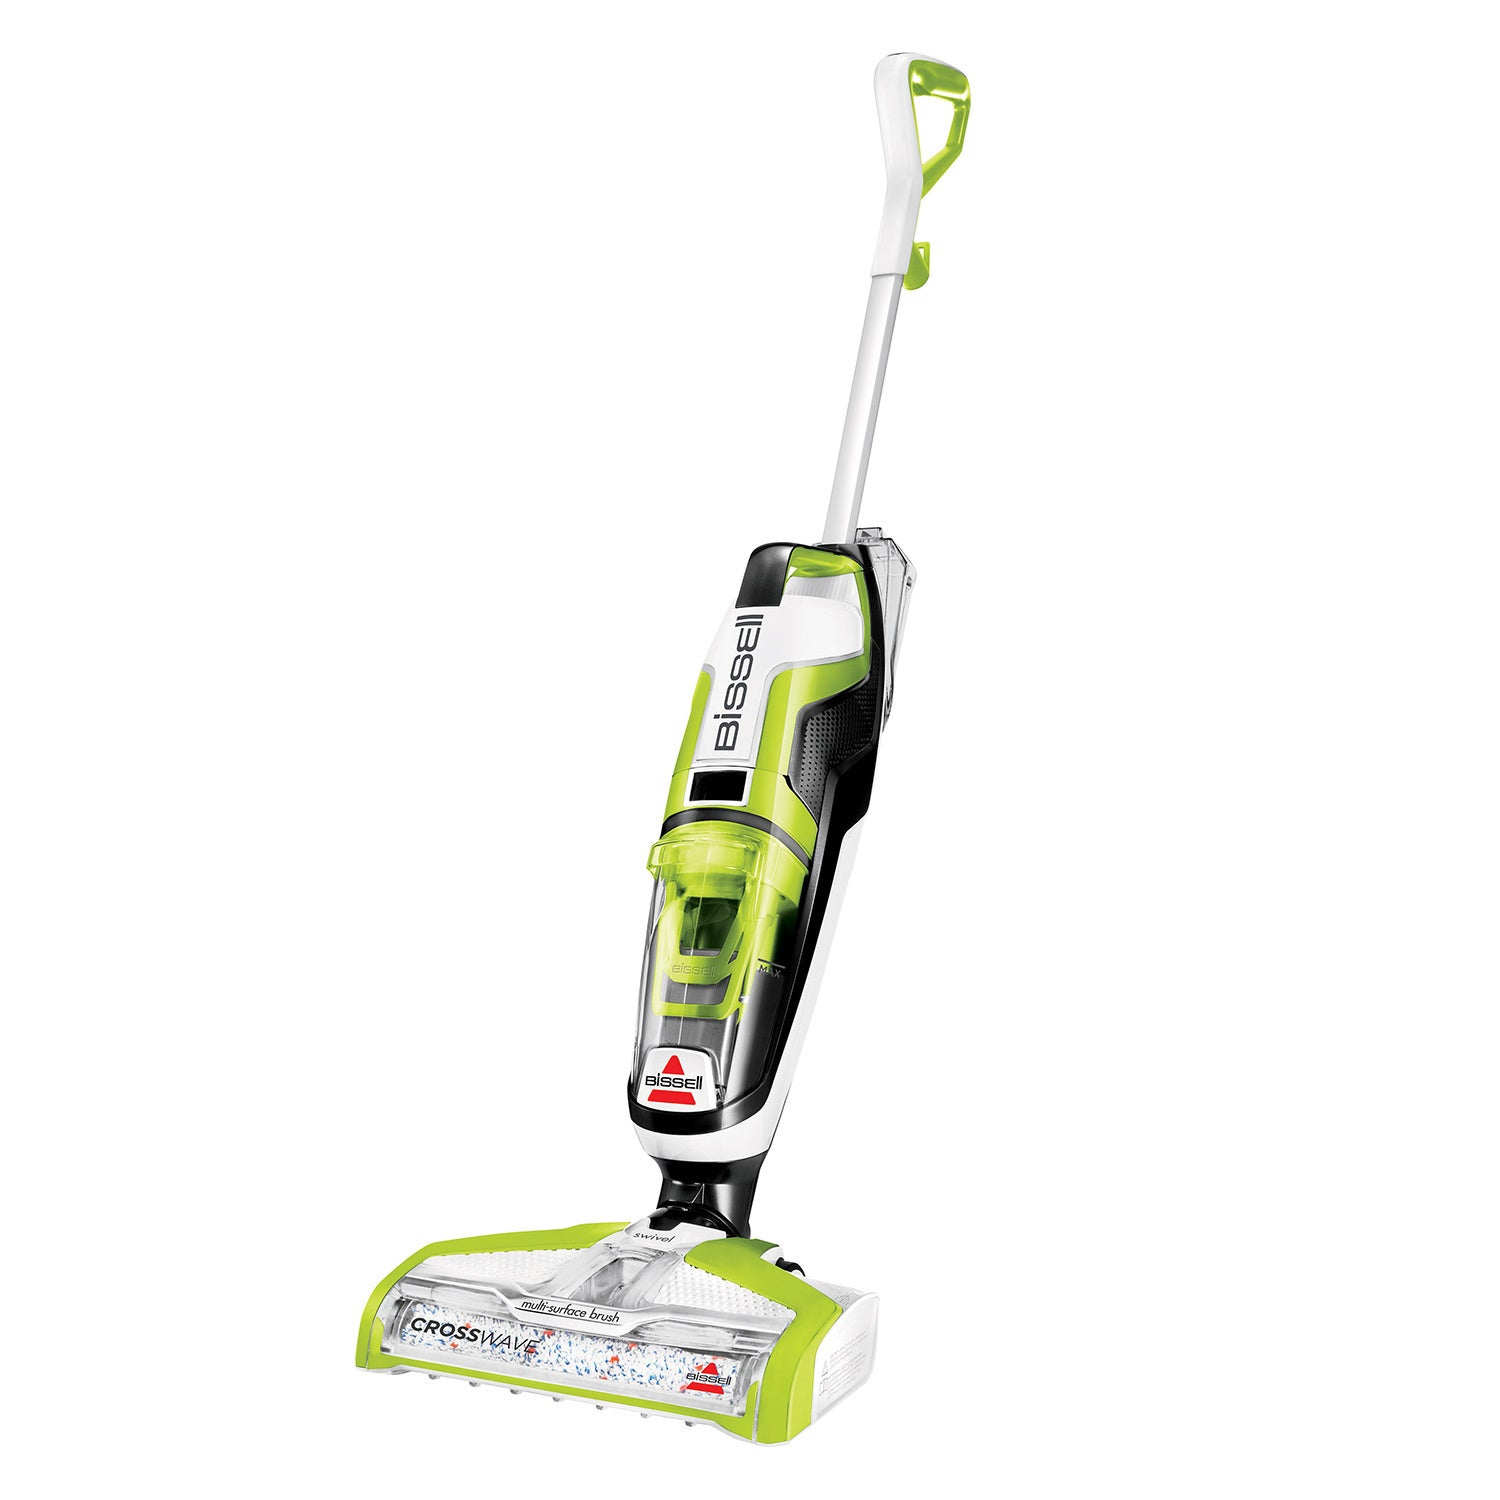 Bissell 1785 Crosswave All-In-One Wet Dry Vacuum, Green